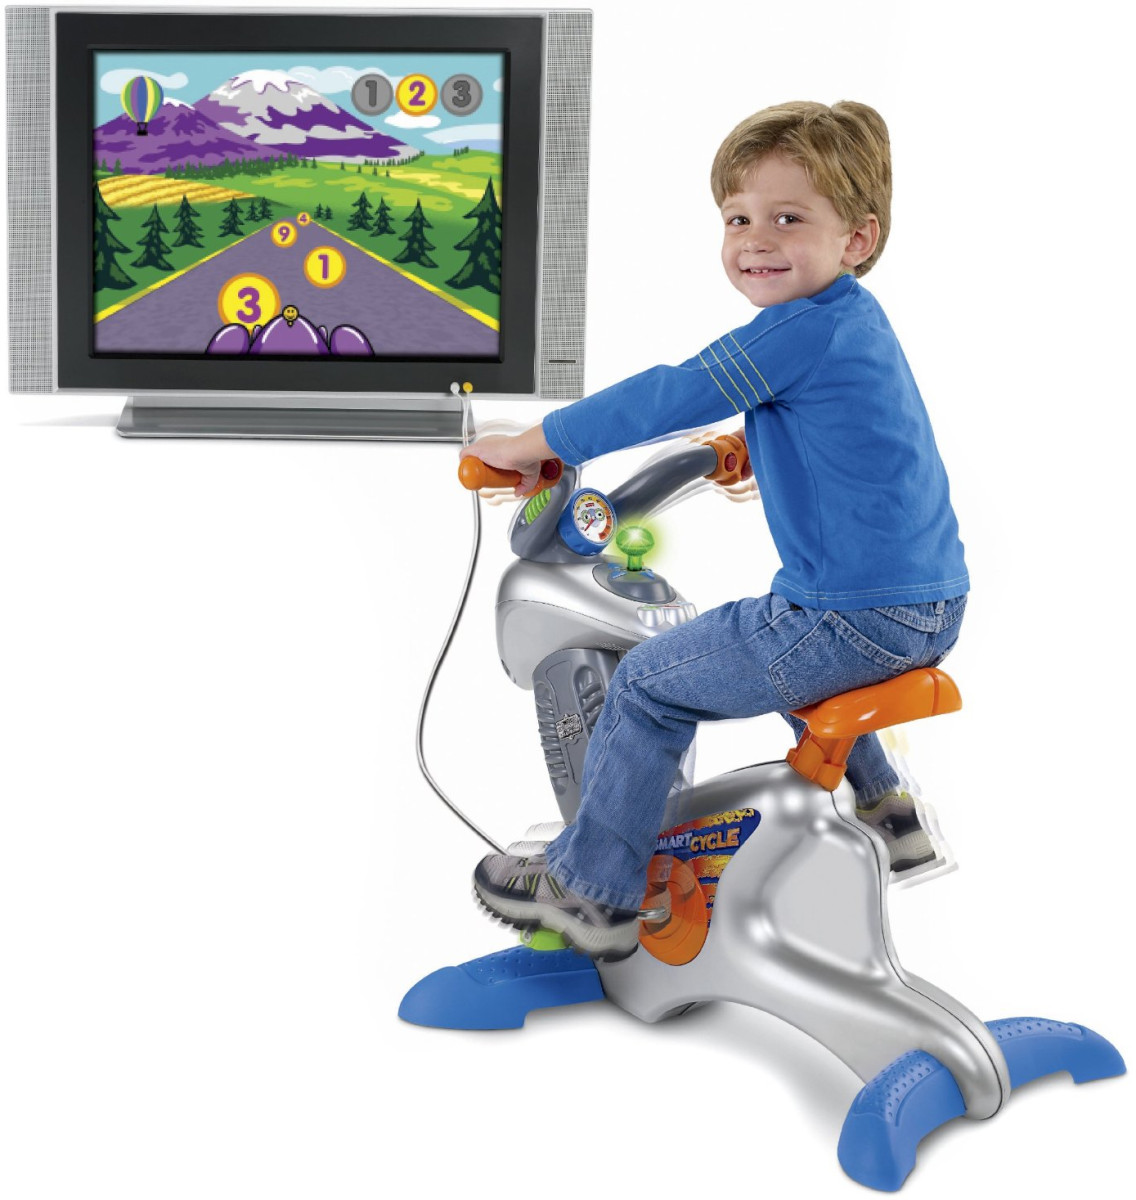 Kids Exercise Bikes For Children - Junior Stationary Fitness Bike Toys